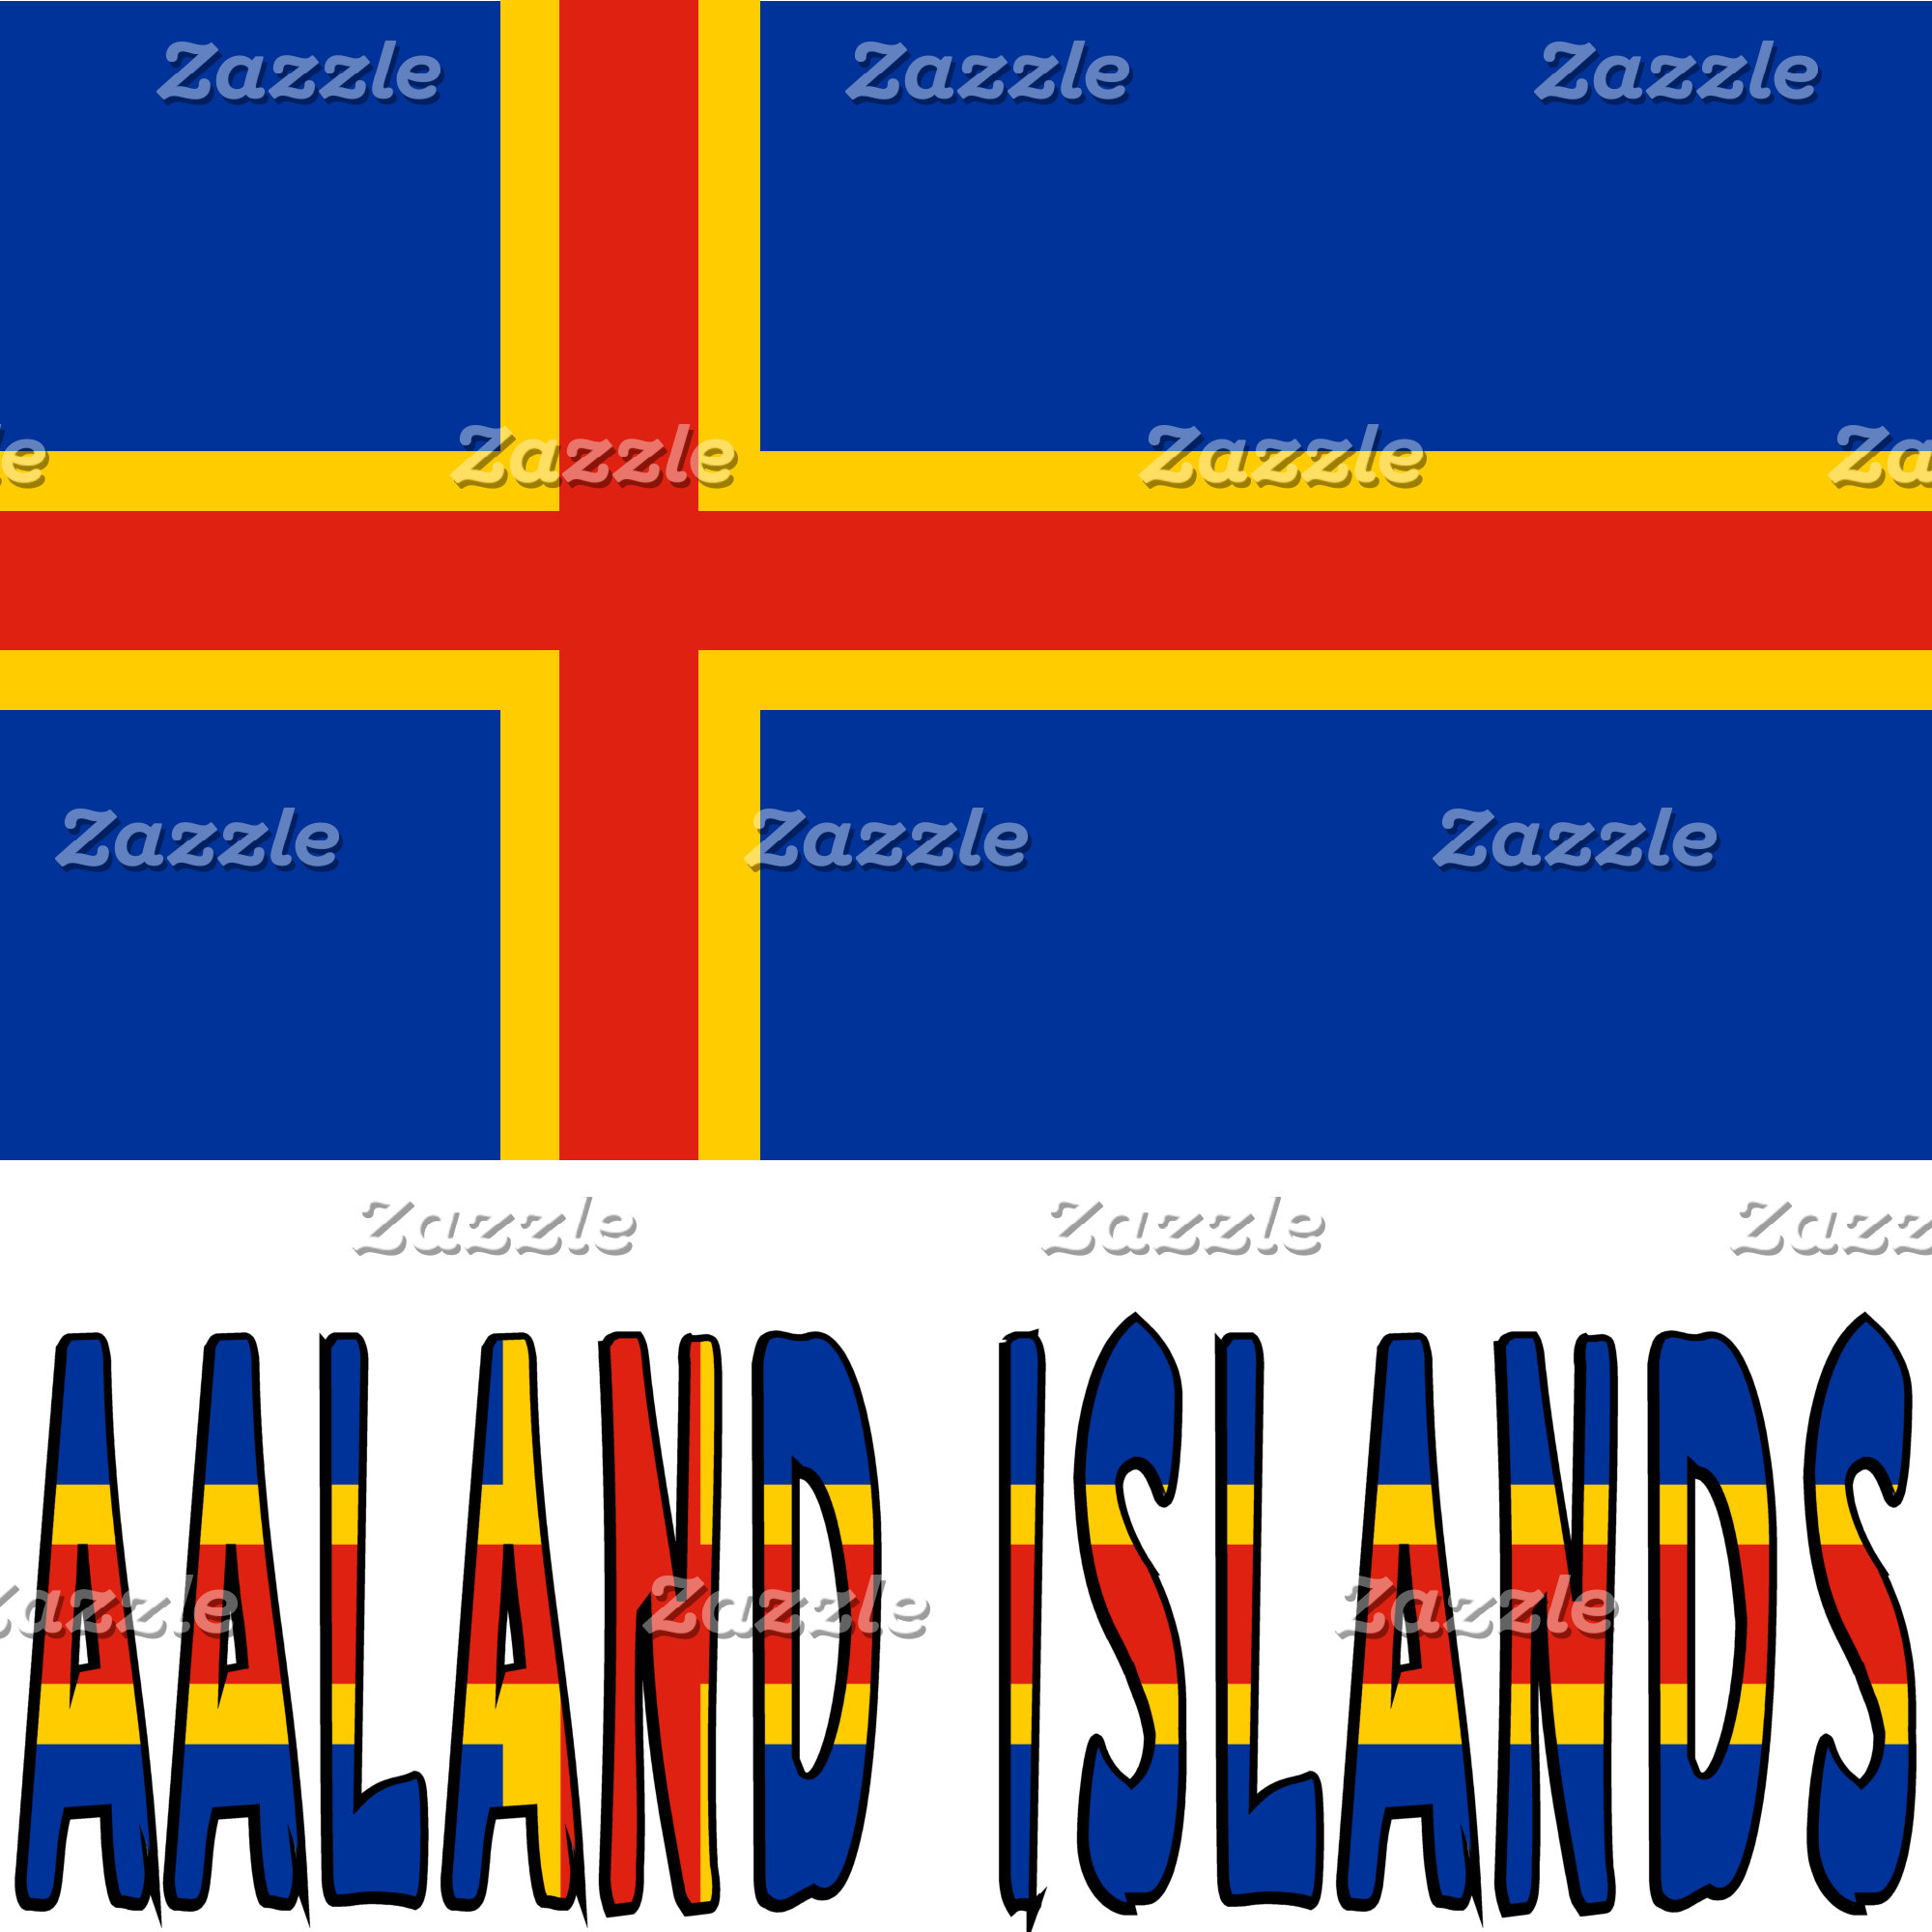 Aland Islands or Aaland Islands